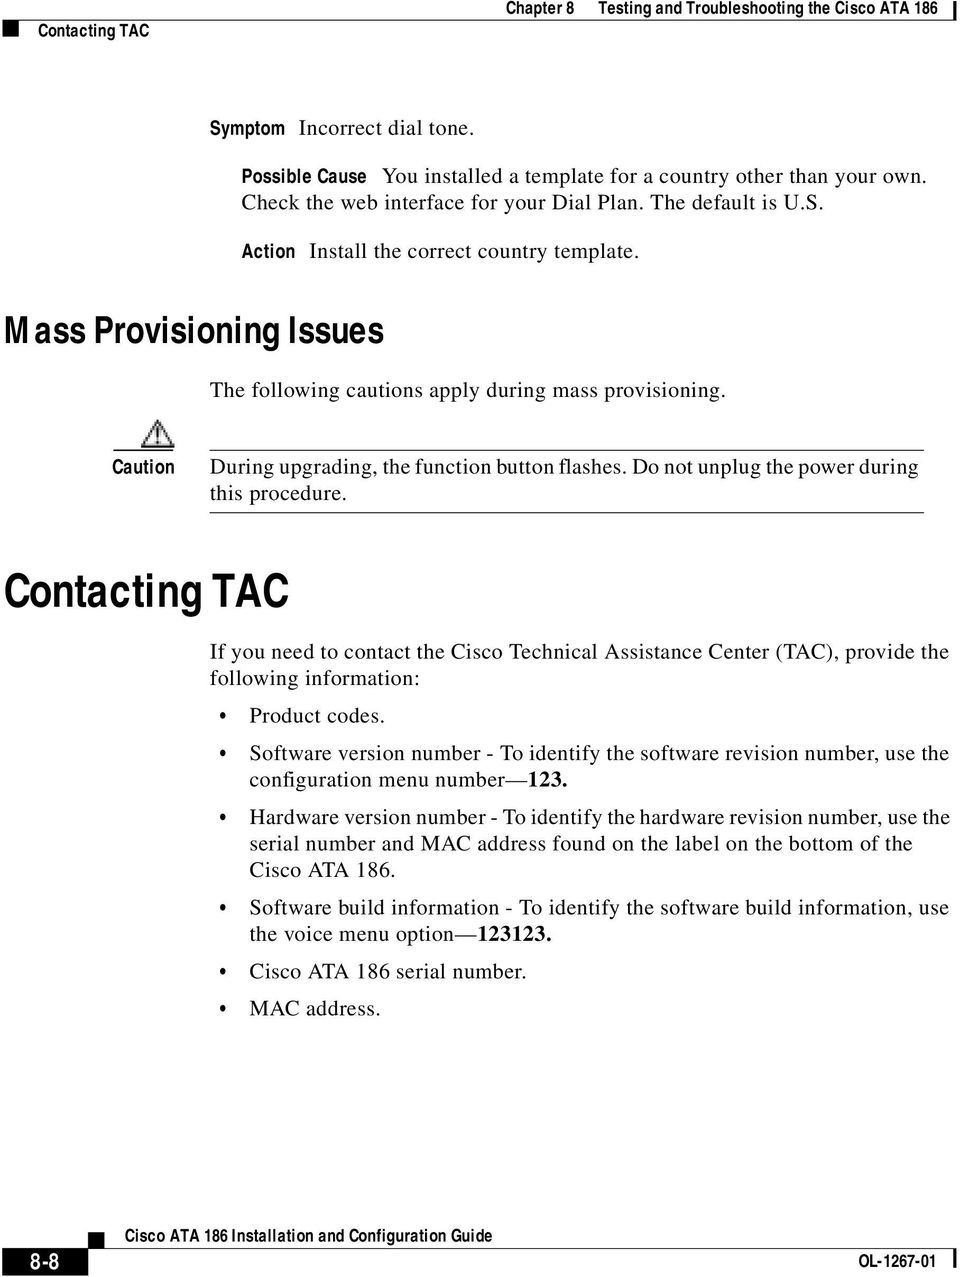 Testing and Troubleshooting the Cisco ATA PDF